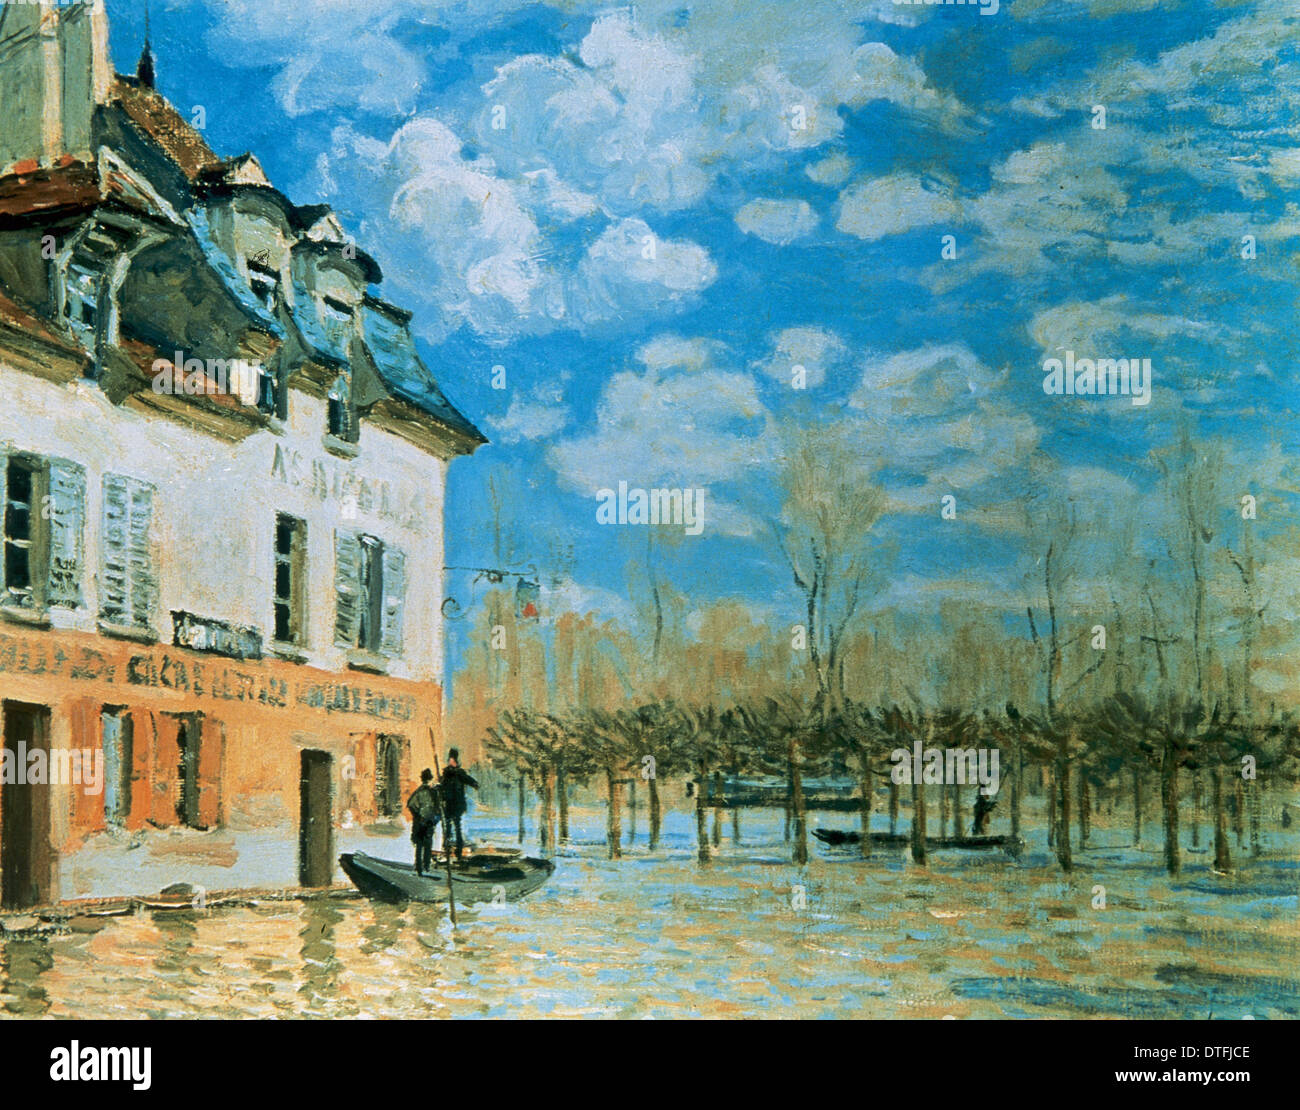 Alfred Sisley (1839-1899). Impressionist landscape painter. The Boat in the Flood, Port-Marly, 1876. - Stock Image